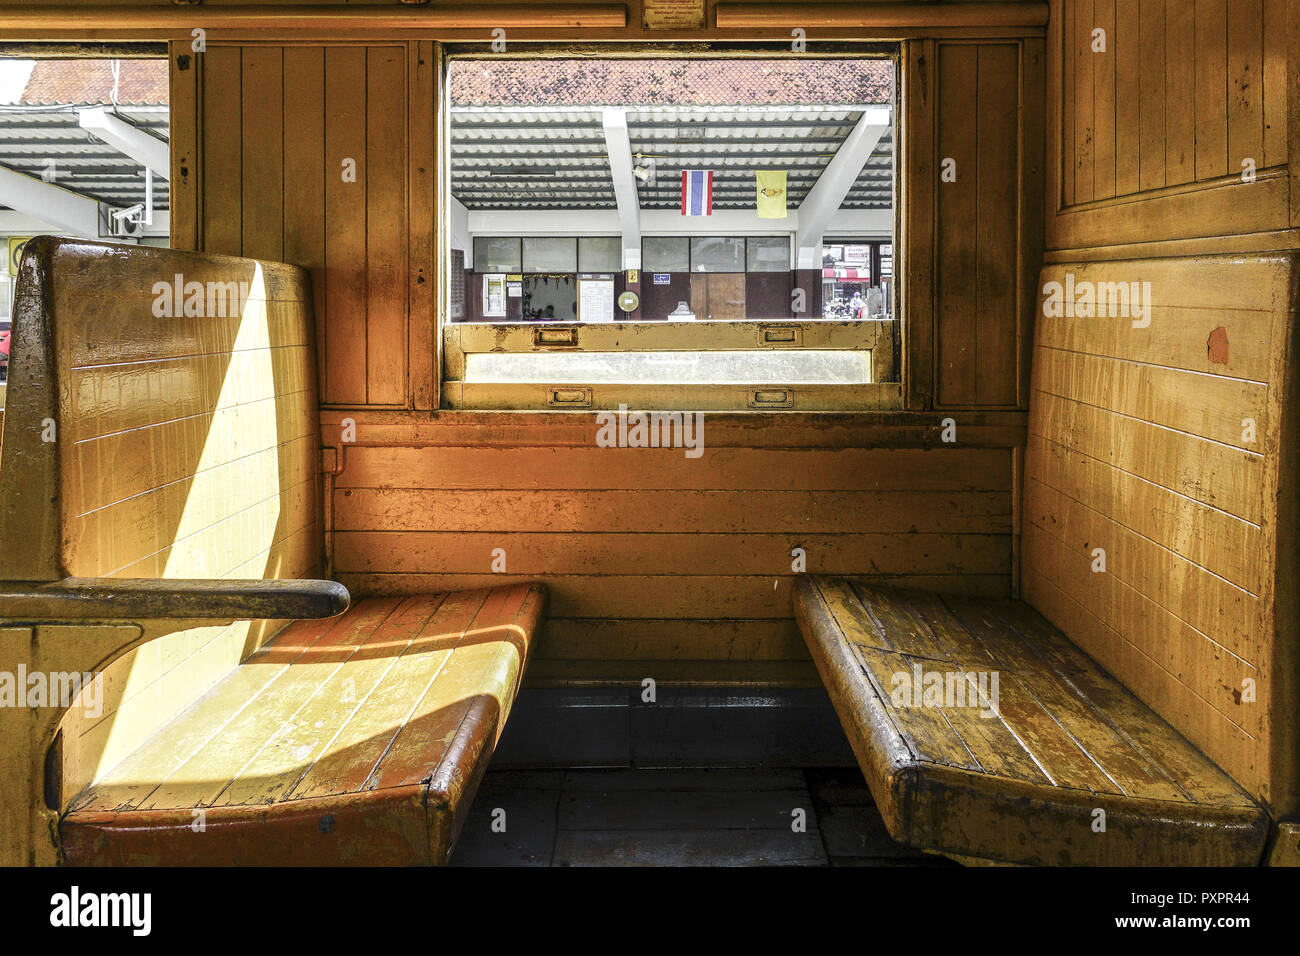 Old Train Passenger Carriage With Wooden Bench Seat Stock Photo